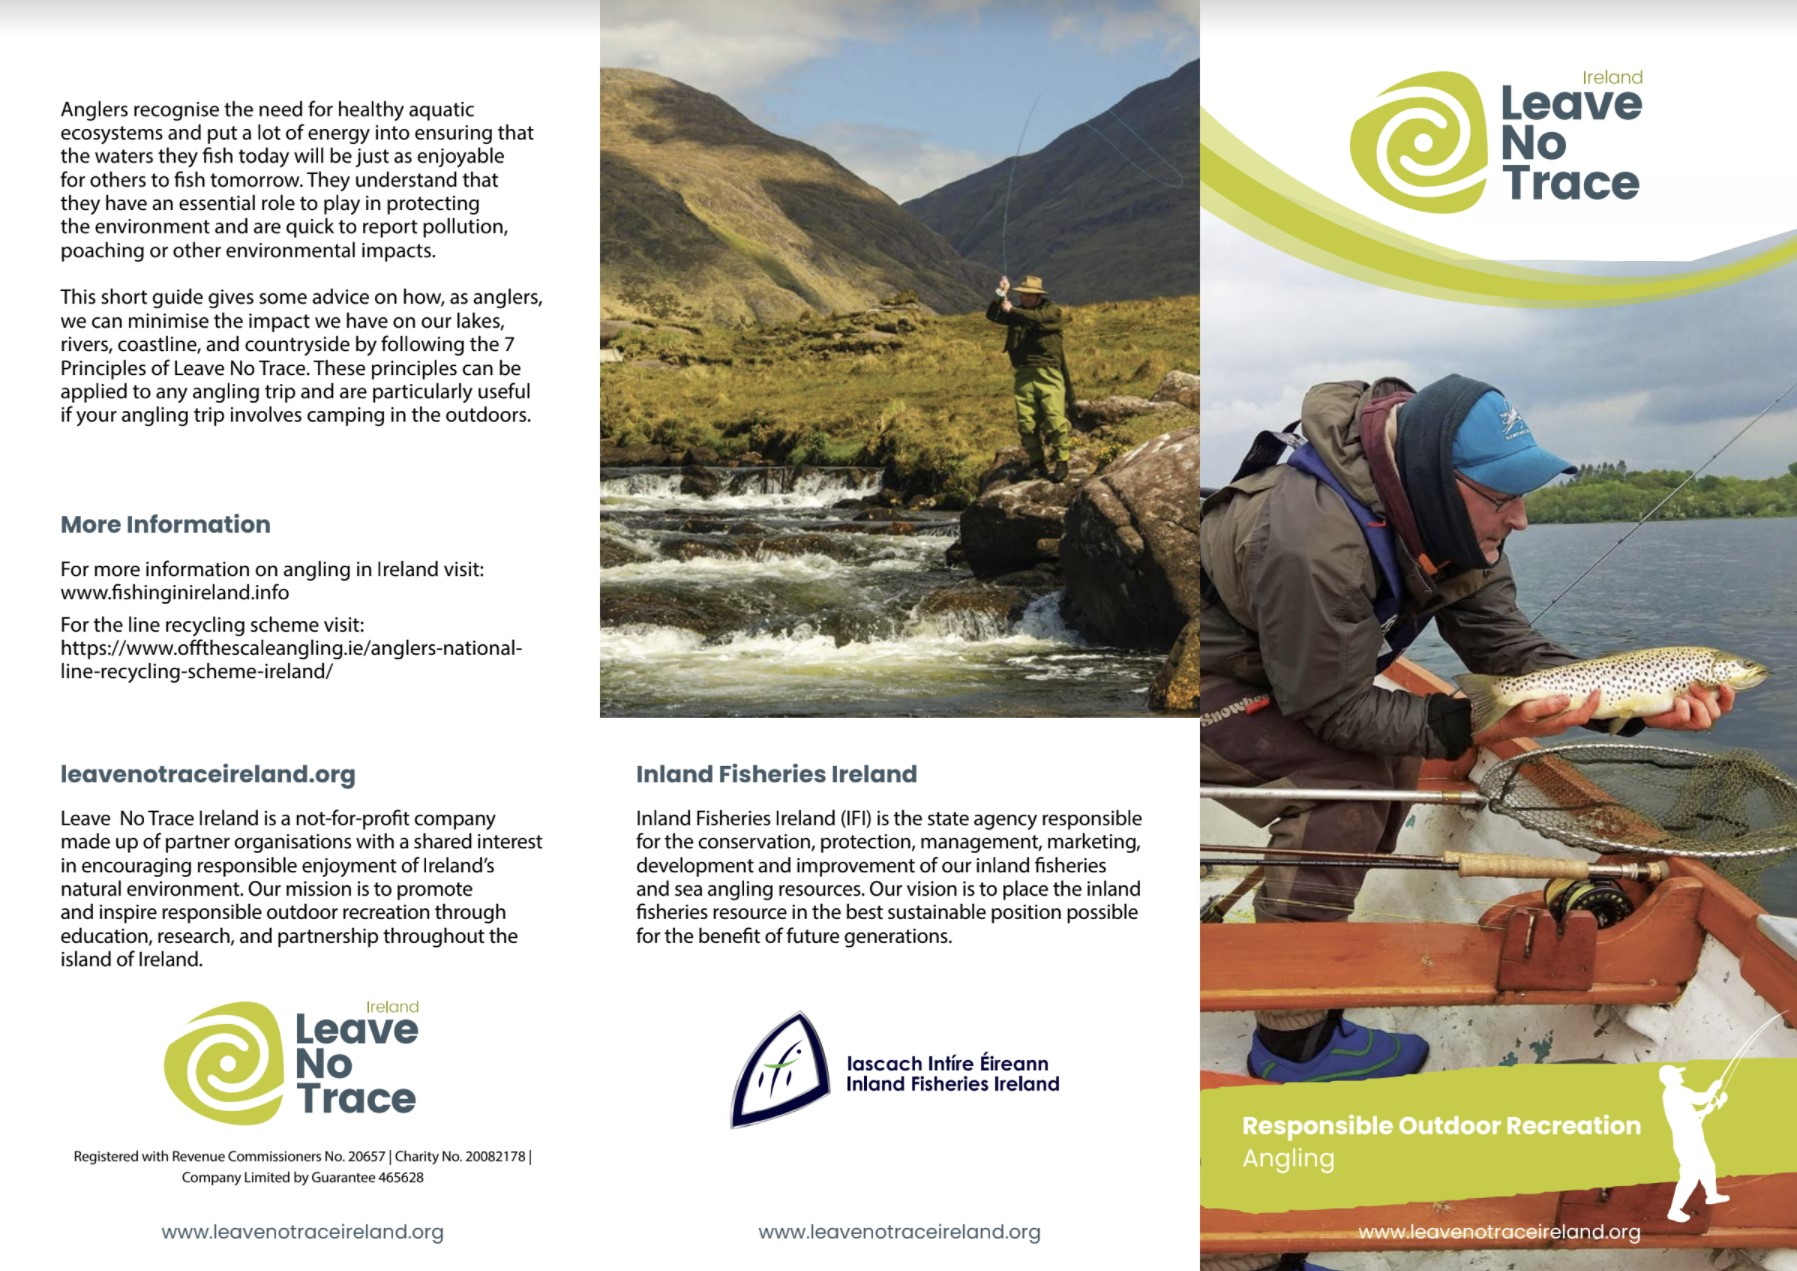 Inland Fisheries Ireland launches responsible outdoor recreation guide for anglers with Leave No Trace Ireland